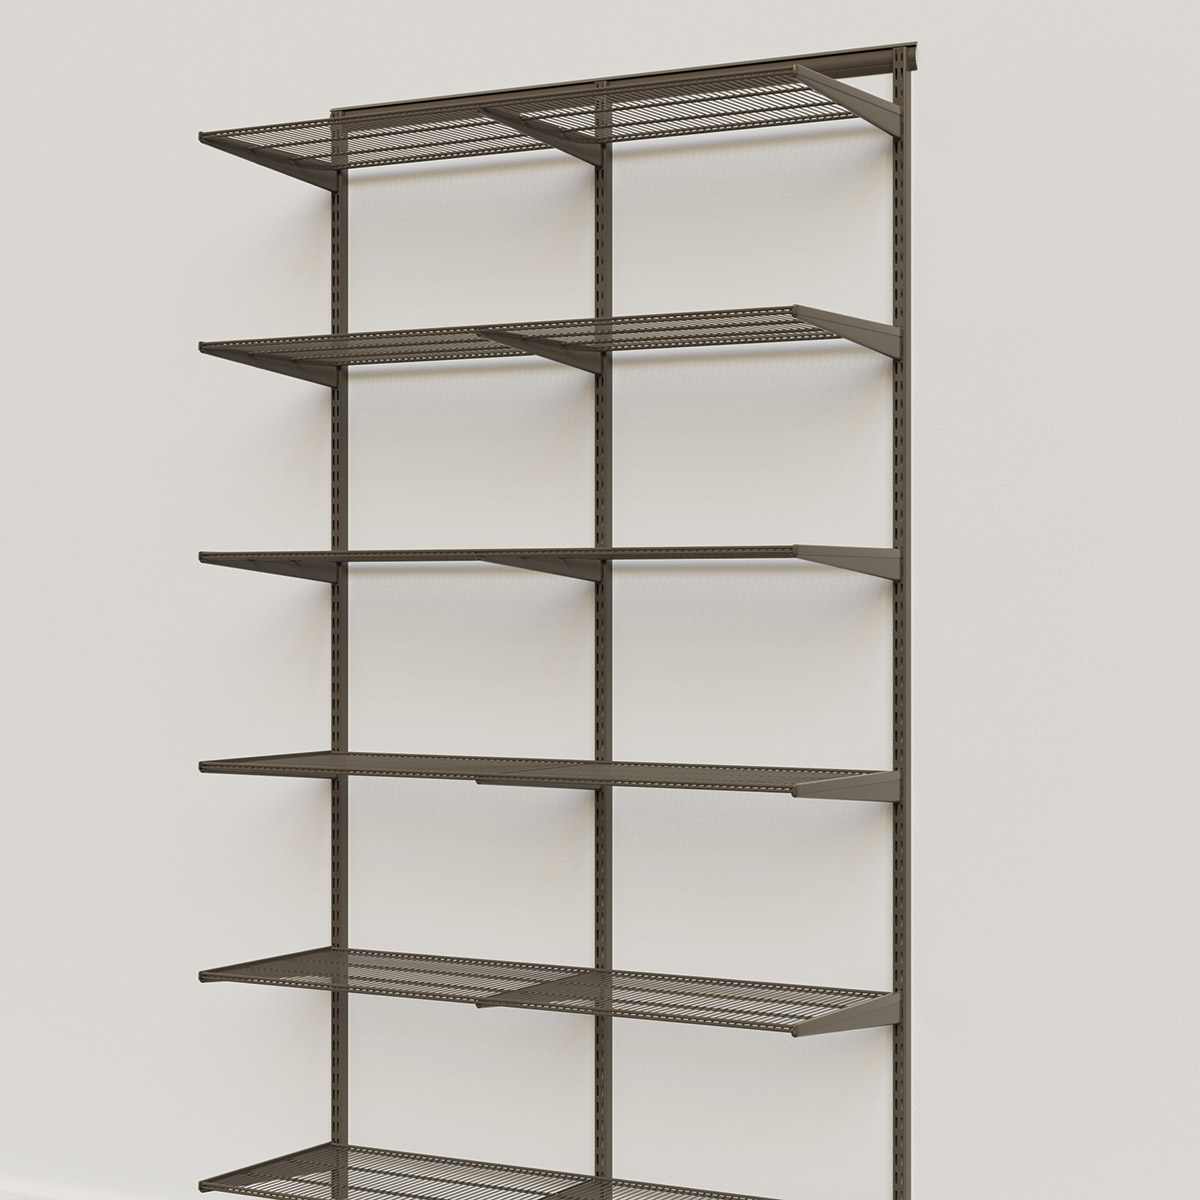 Elfa Classic Graphite 4' Basic Shelving Units for Anywhere